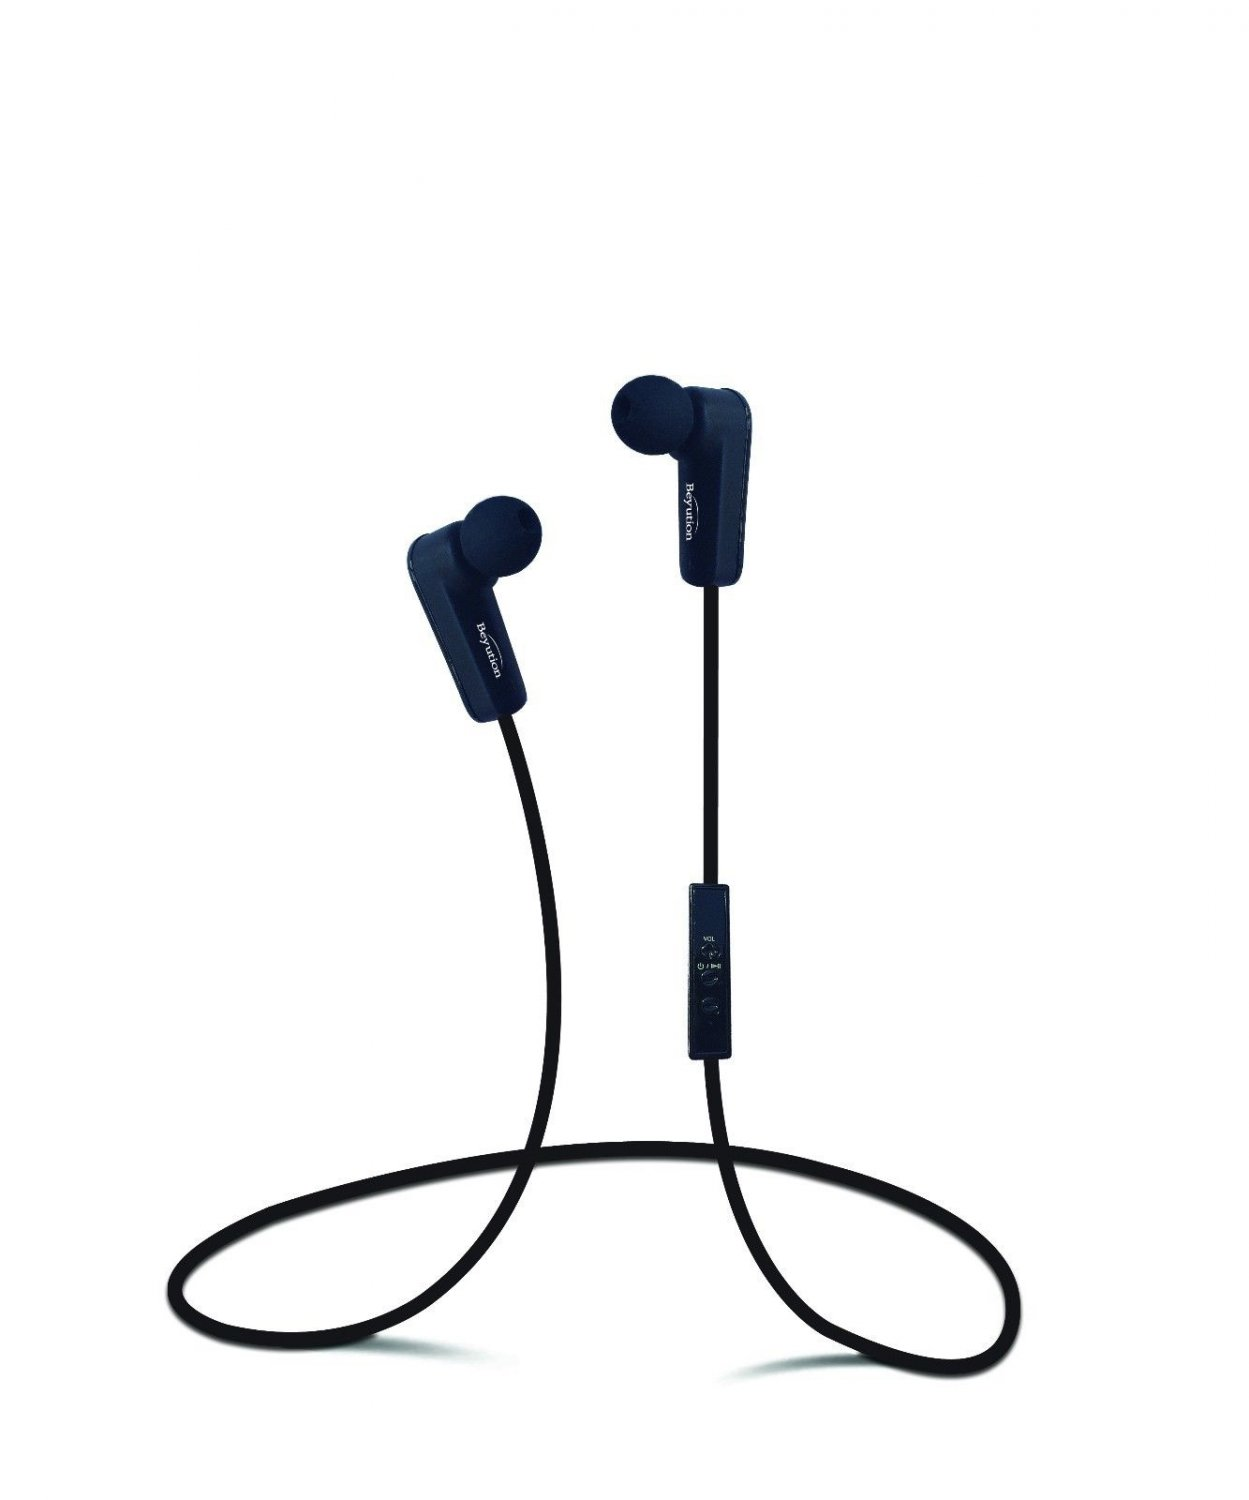 bluetooth 4 0 music earphone headphone headset for galaxy s5 4 note2 mic. Black Bedroom Furniture Sets. Home Design Ideas